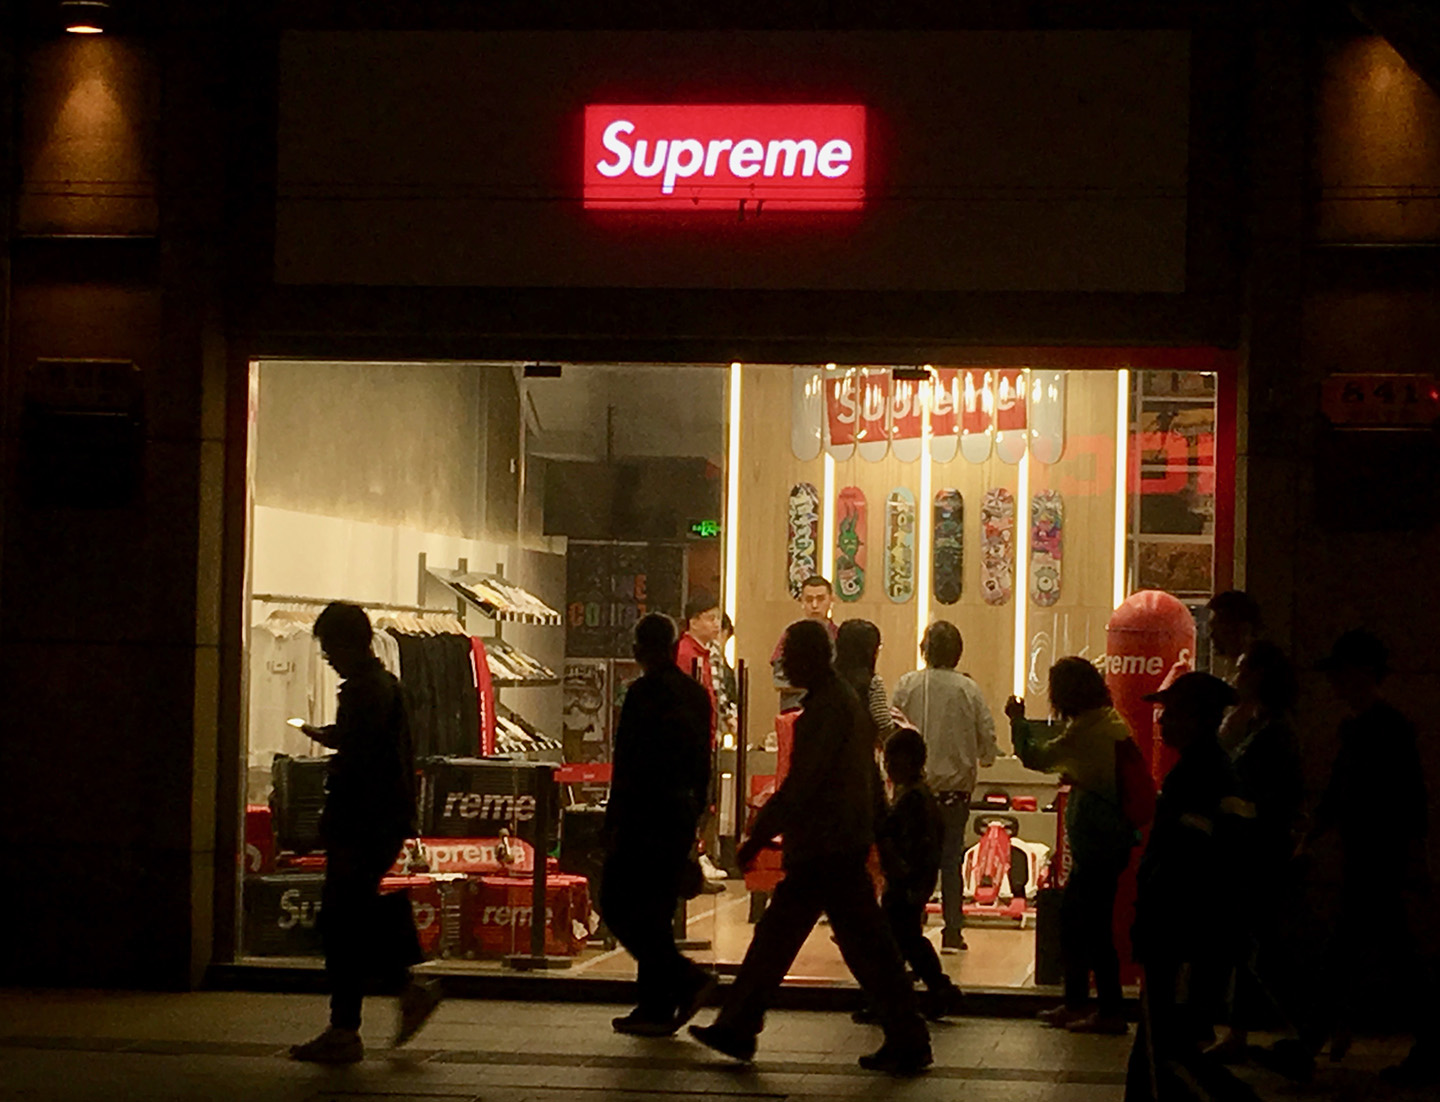 A night shot of a store front.